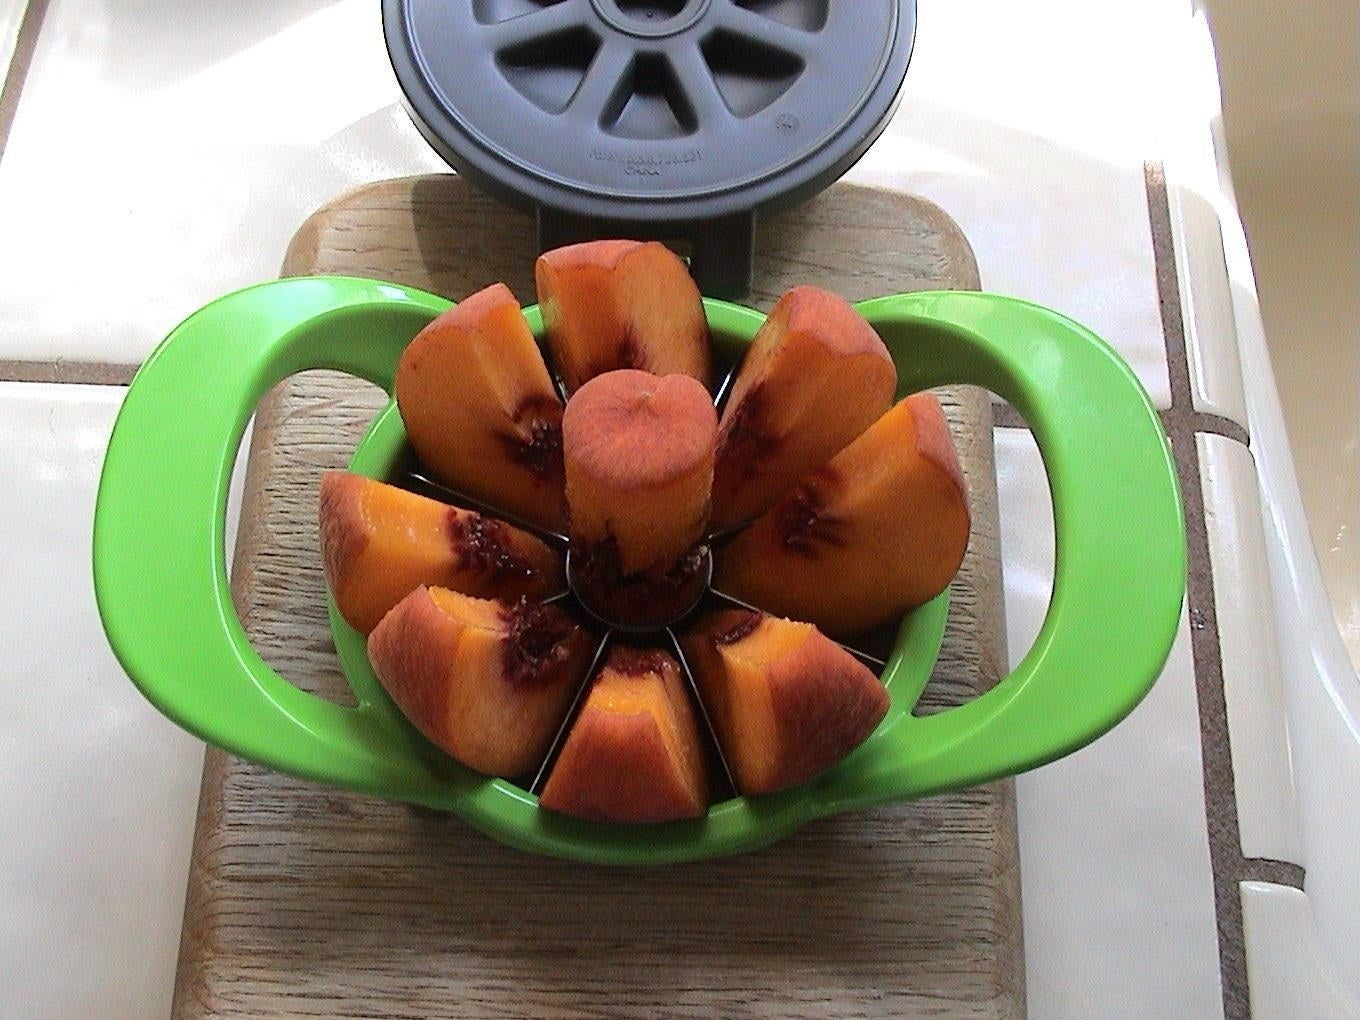 Reviewer's apple slicer in use on peach